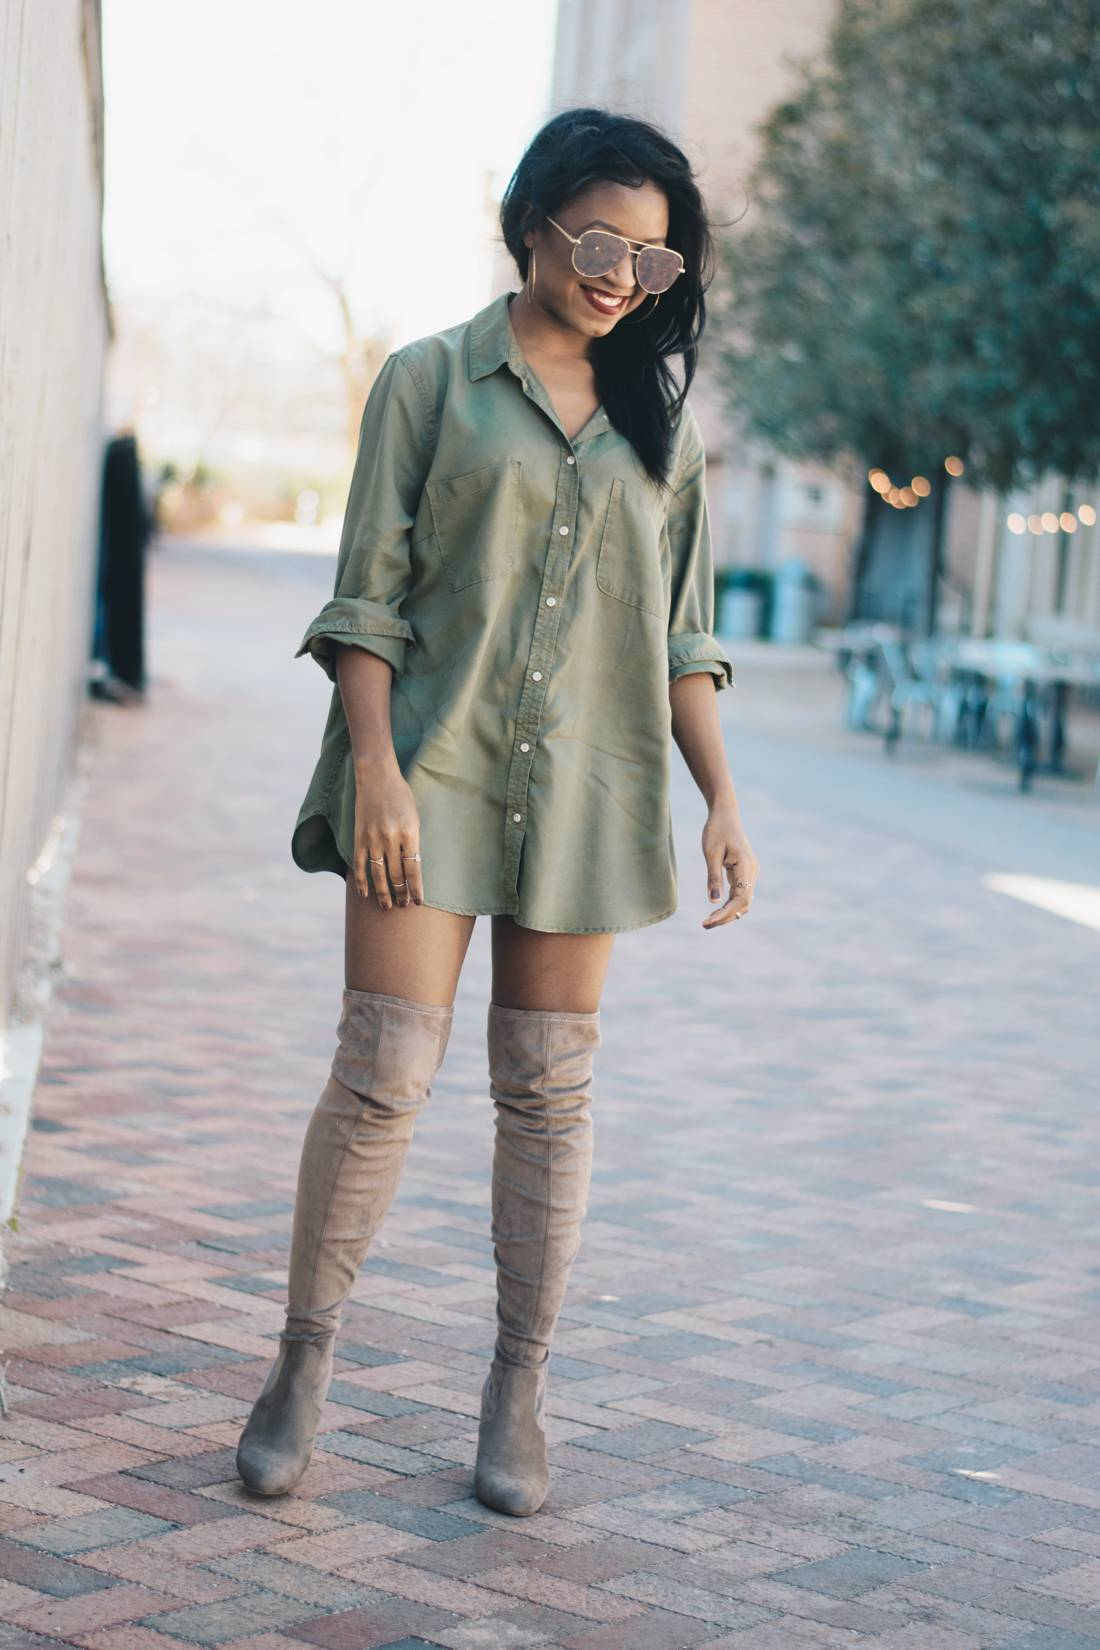 Nude Thigh High Boots And Oversized Shirt 7 Venti Fashion